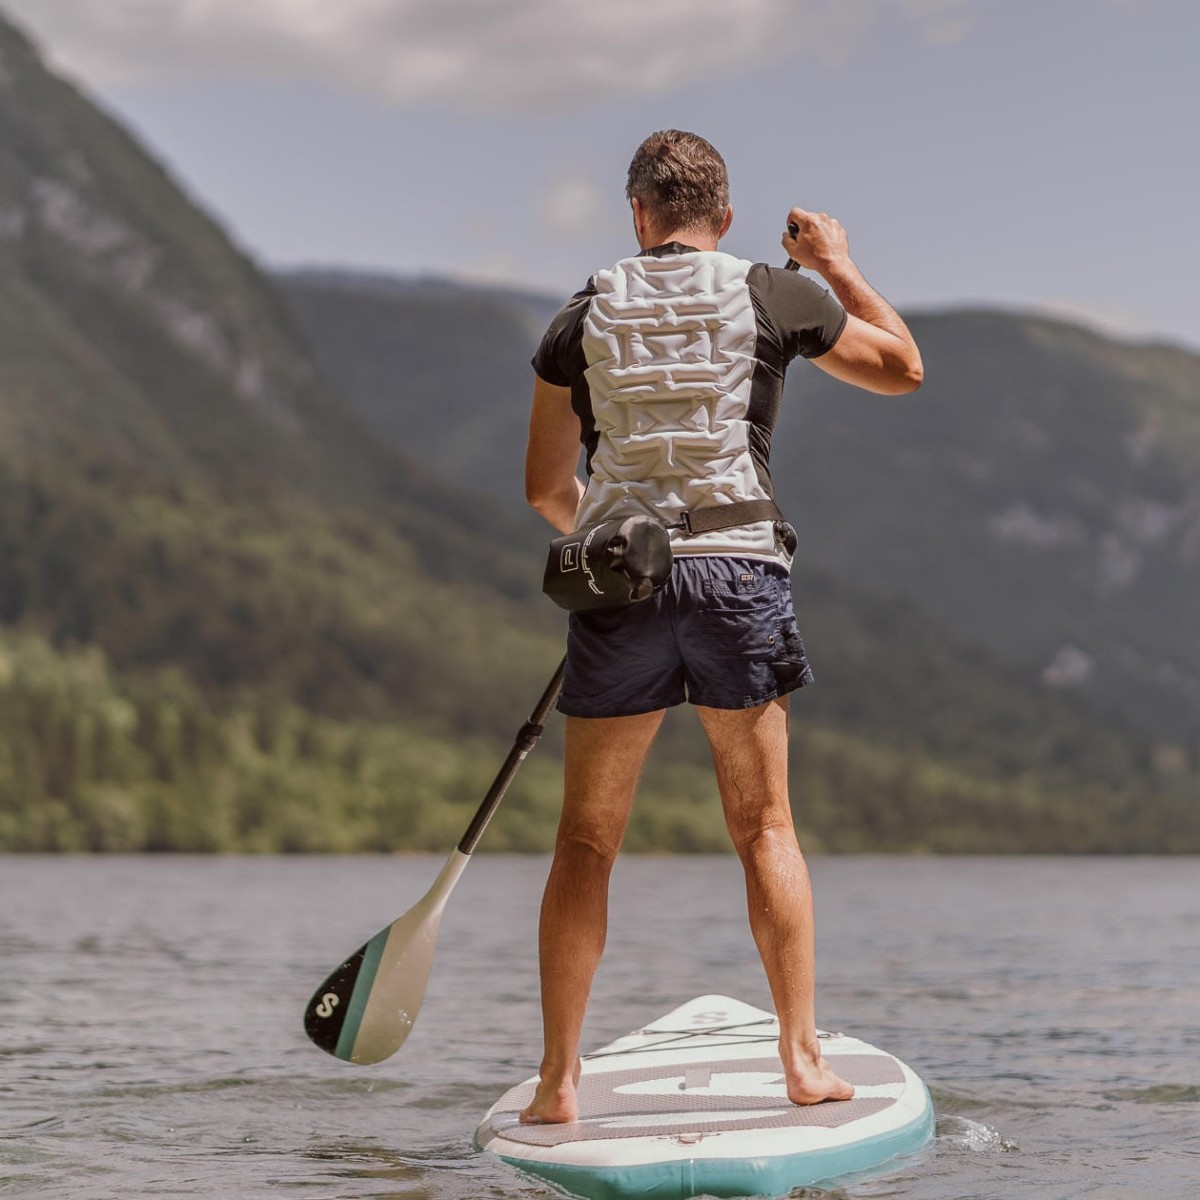 PUFFERS Inflatable T-Shirt & Rash Guard offers unlimited floating